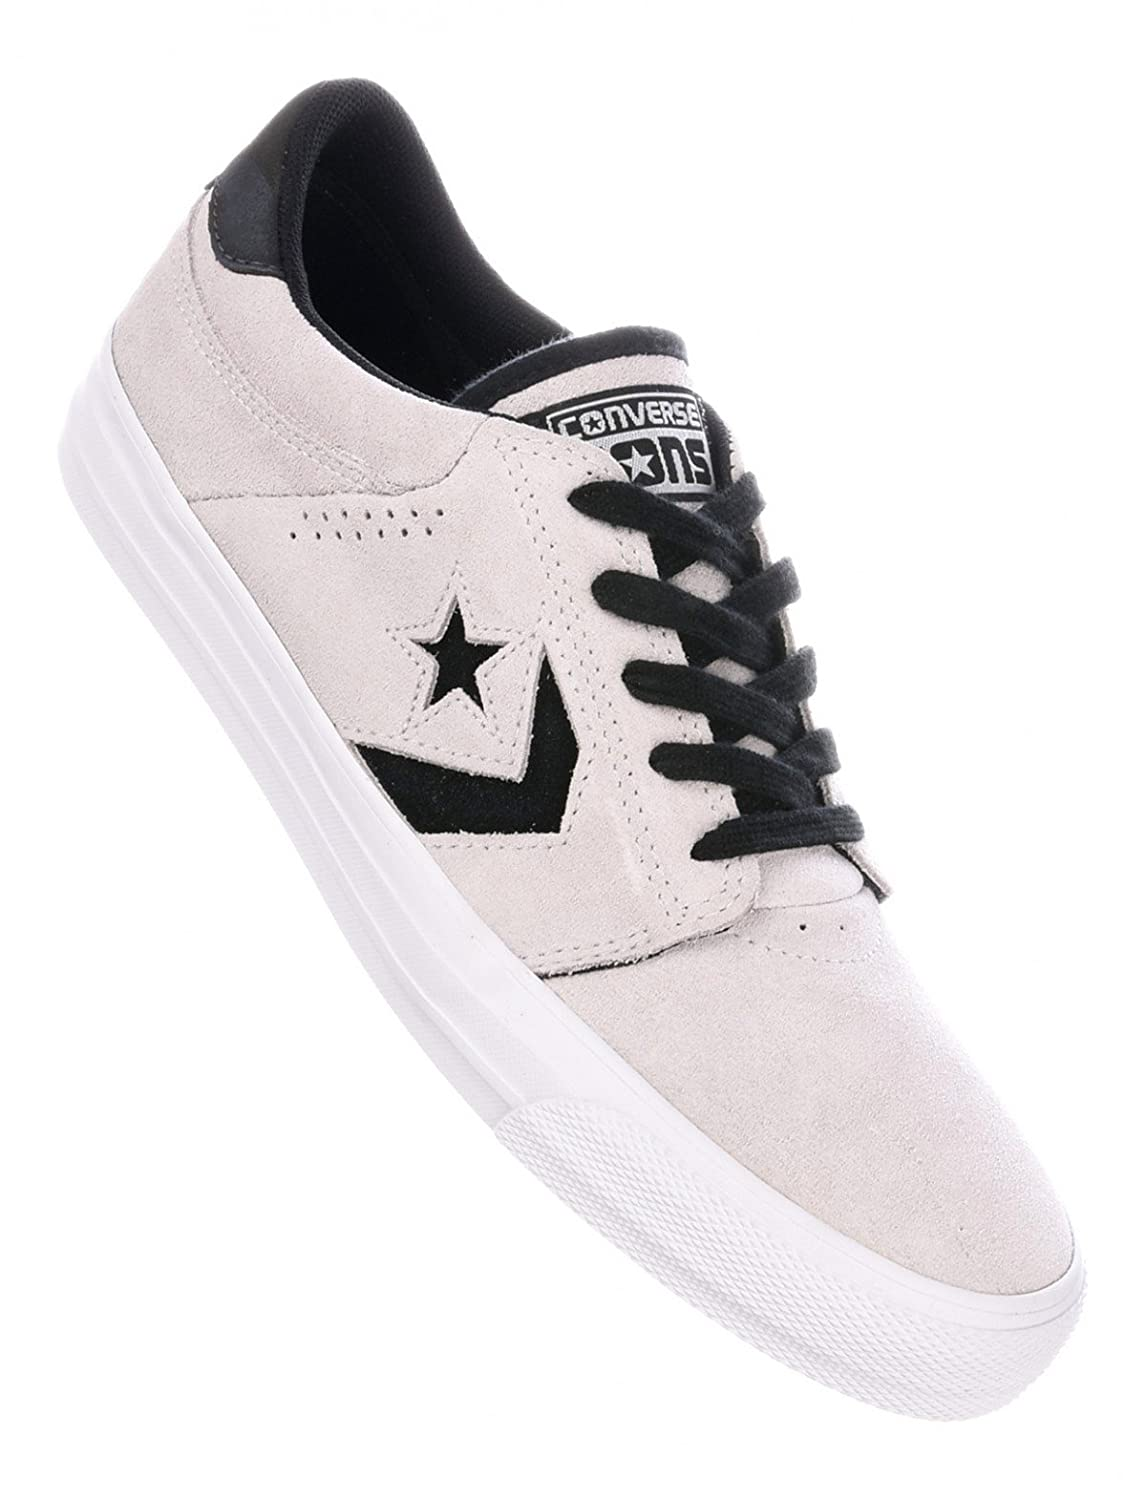 converse CONS TRE STAR SUEDE OX MOUSE